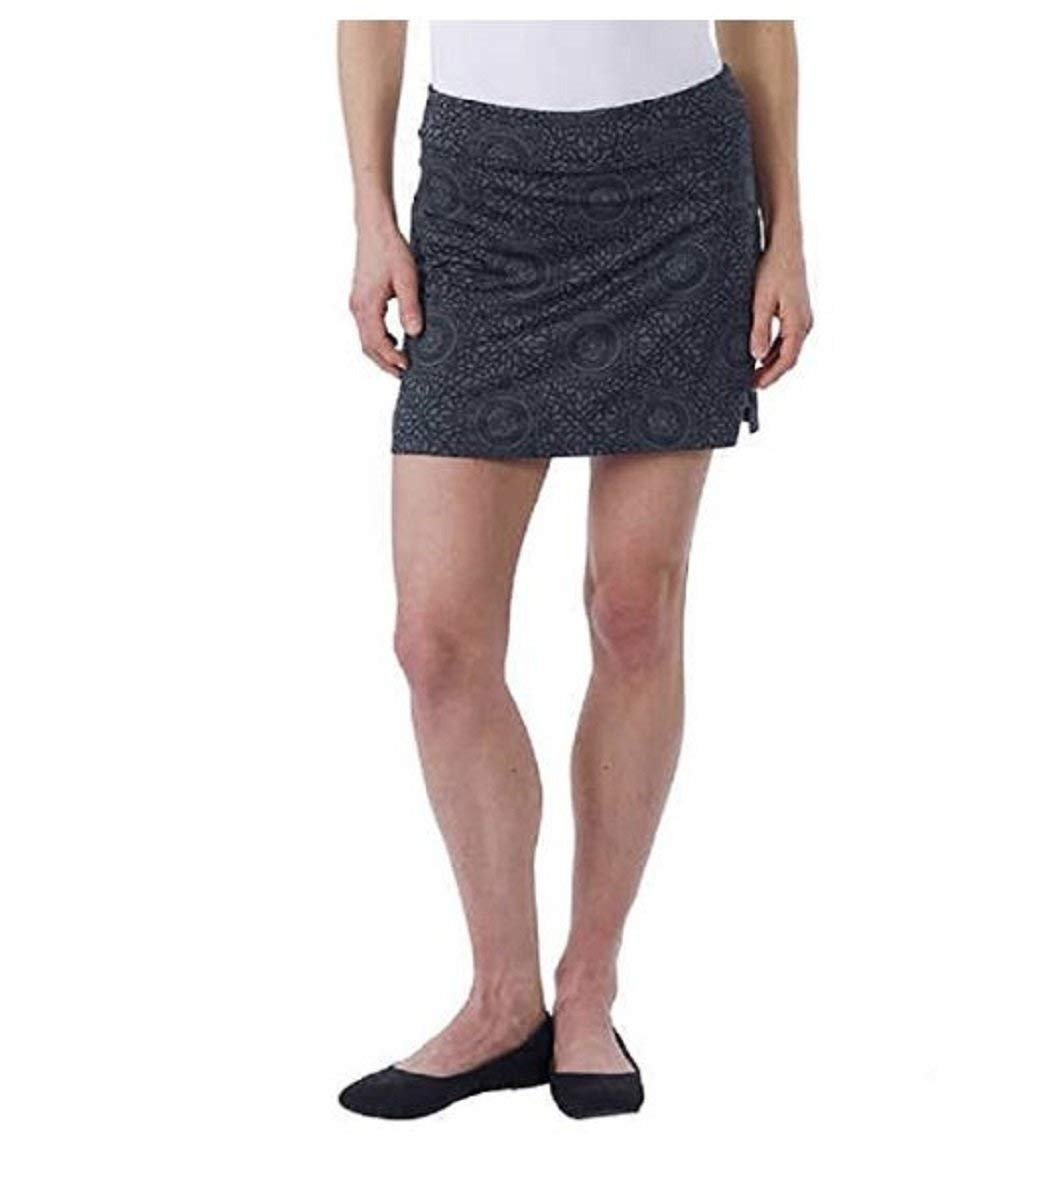 Tranquility by Colorado Clothing Ladies Skort - Black Sunstone Women's Everyday Skort (X-Small)